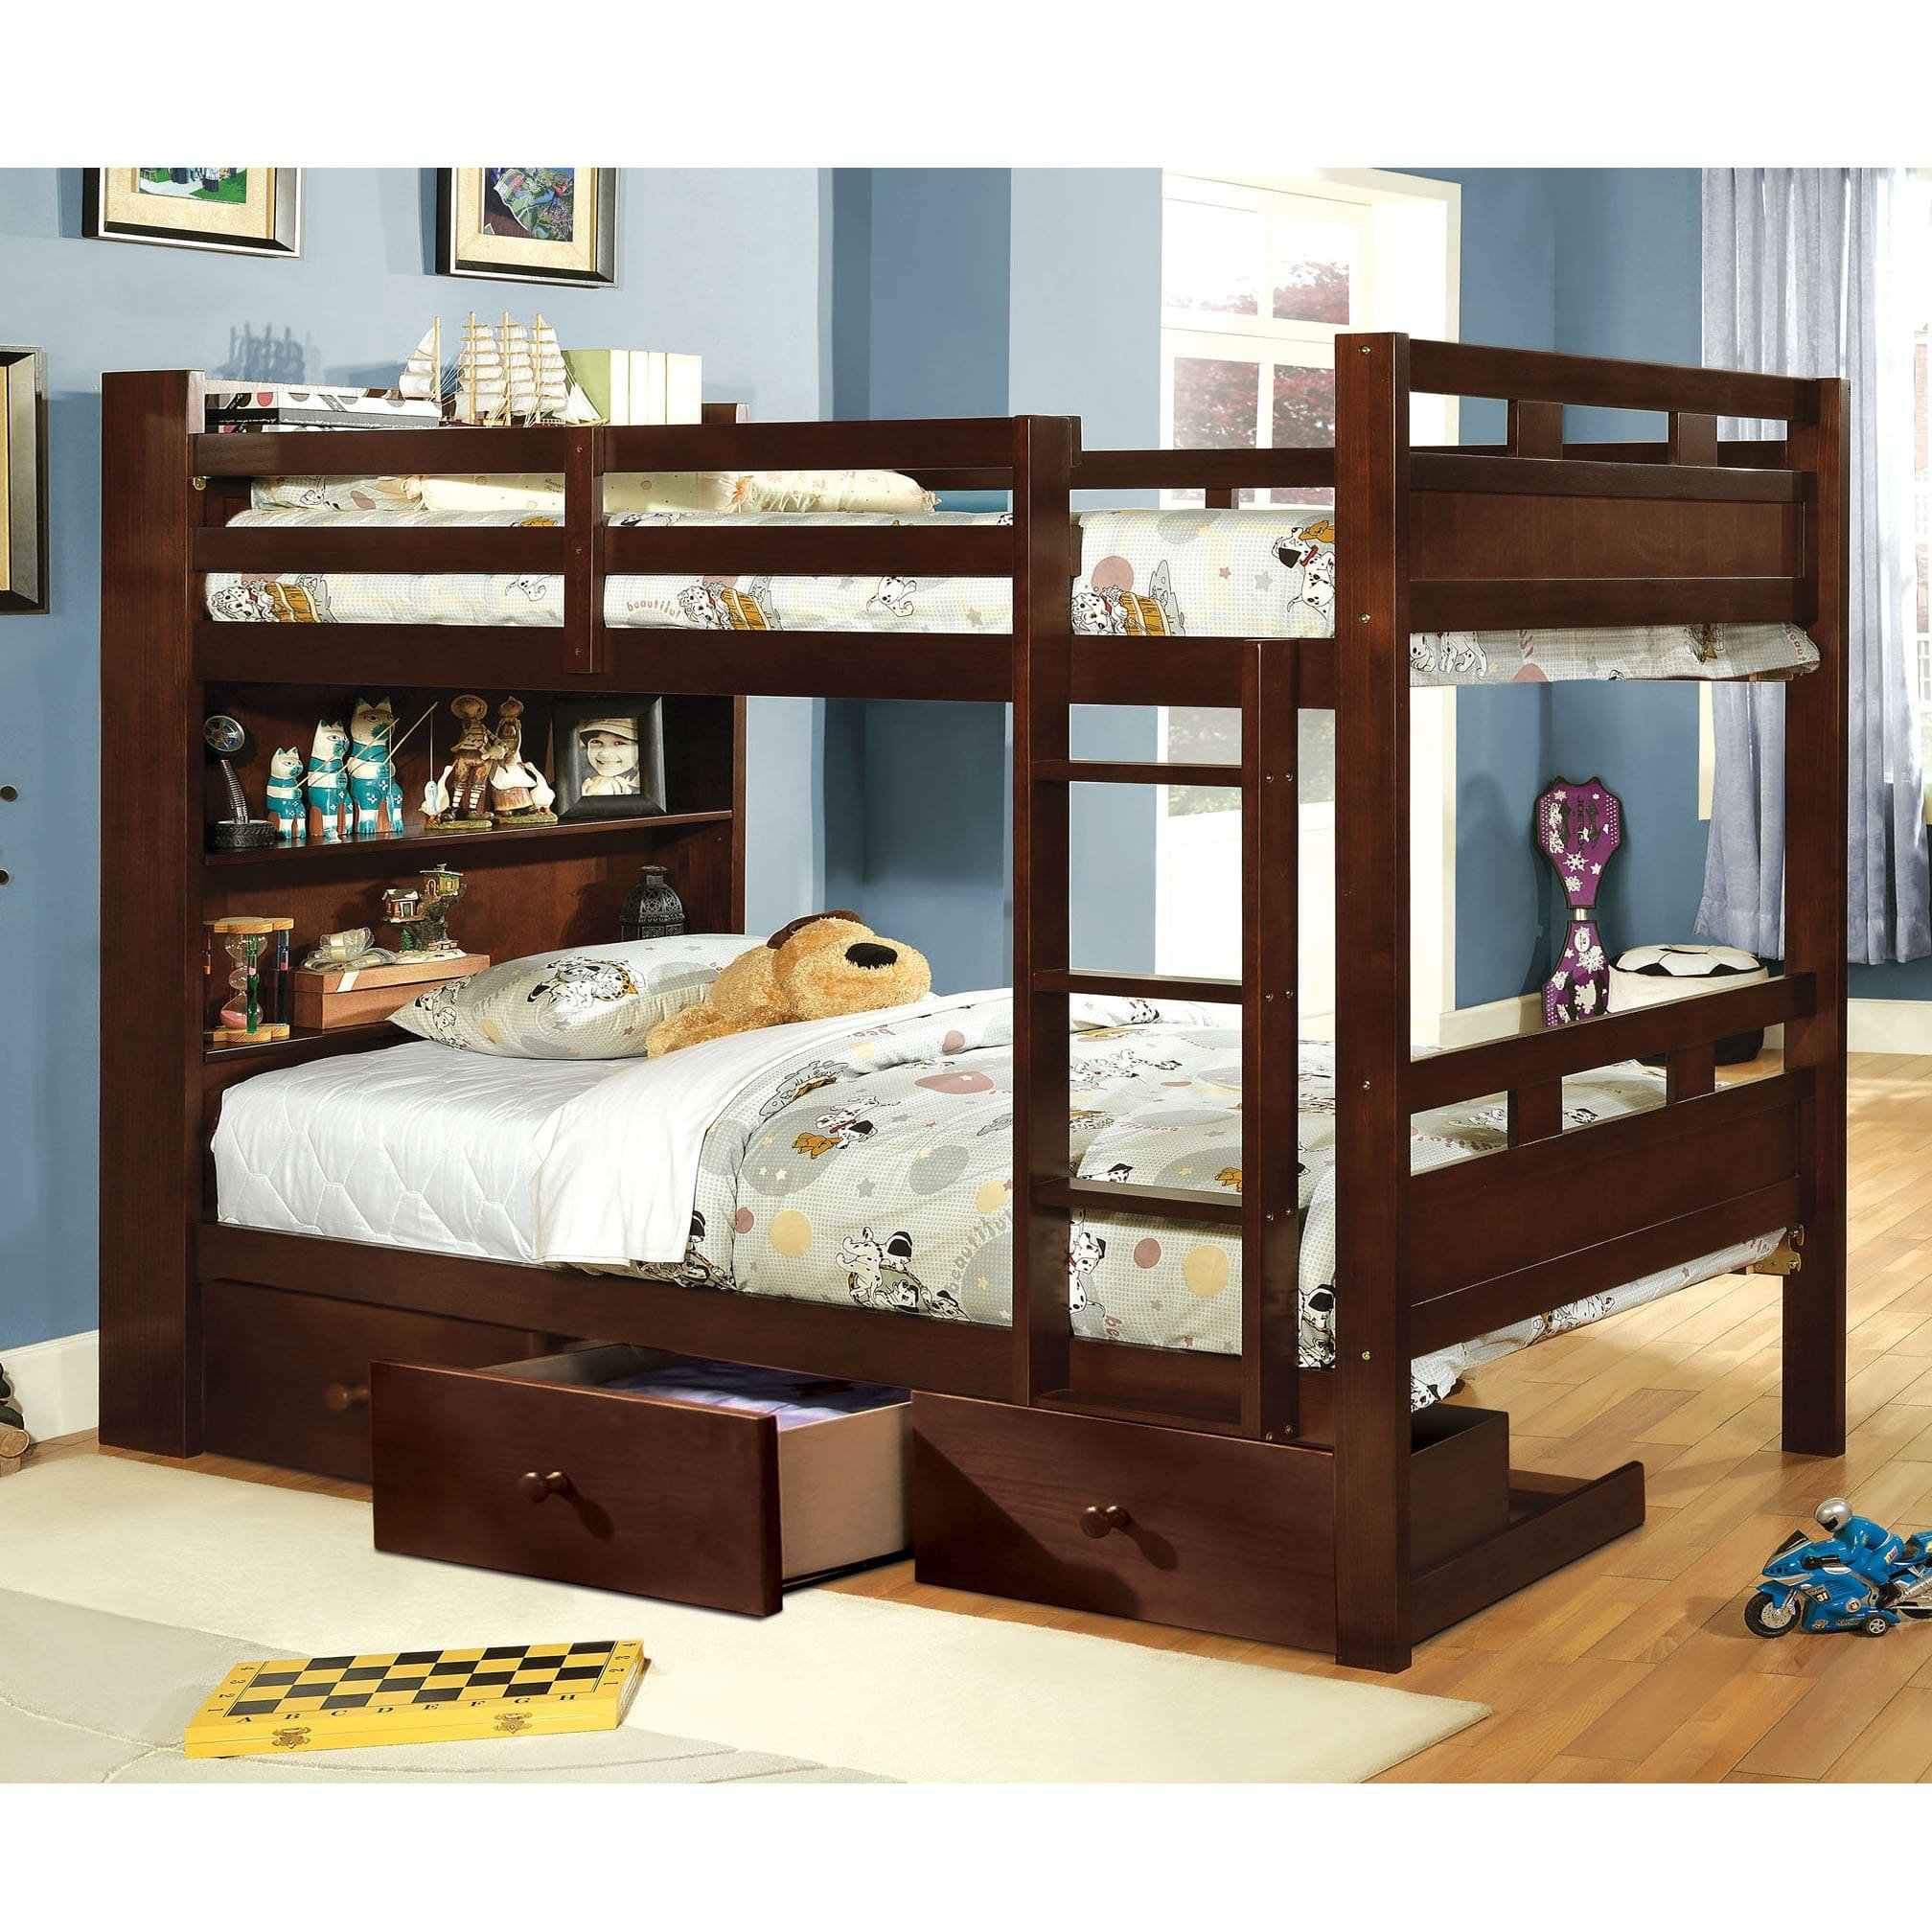 Furniture of America Chessin Dark Walnut Bunk Bed with Built-In Bookcase Headboard Twin